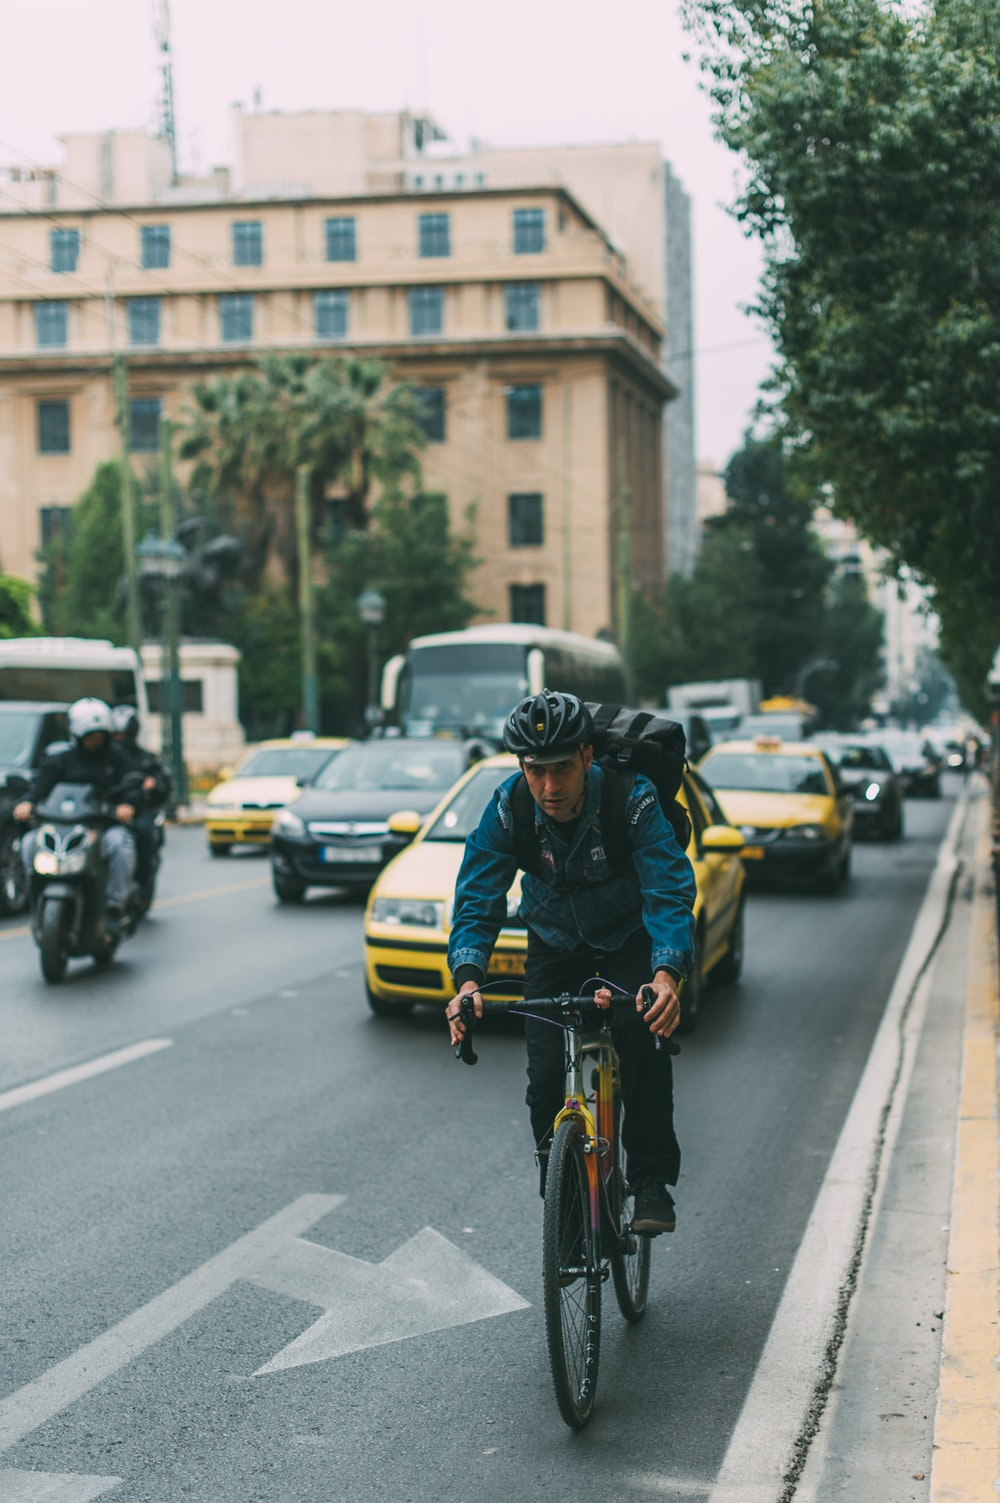 man riding bicycle on a road with cars during daytime